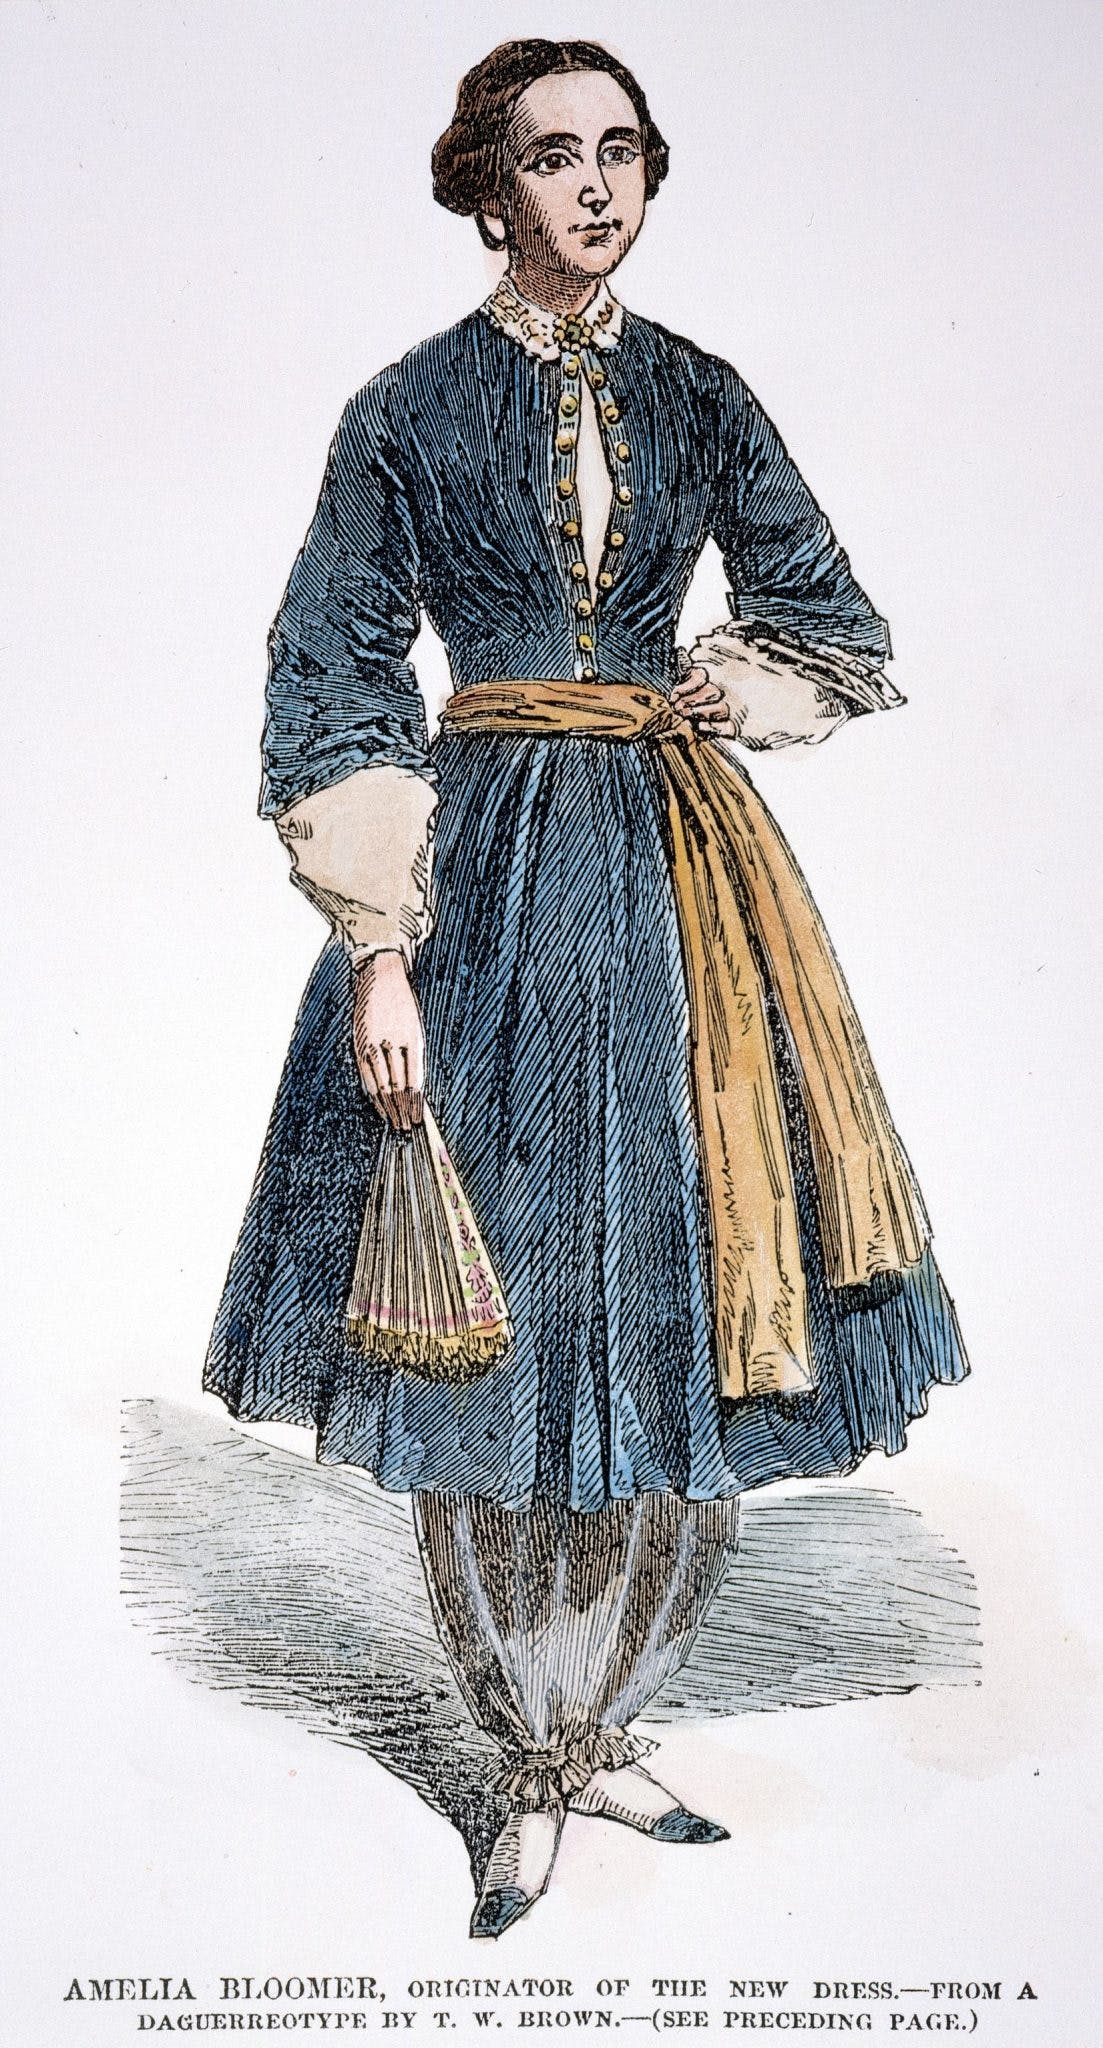 How the suffragettes used fashion to further their cause